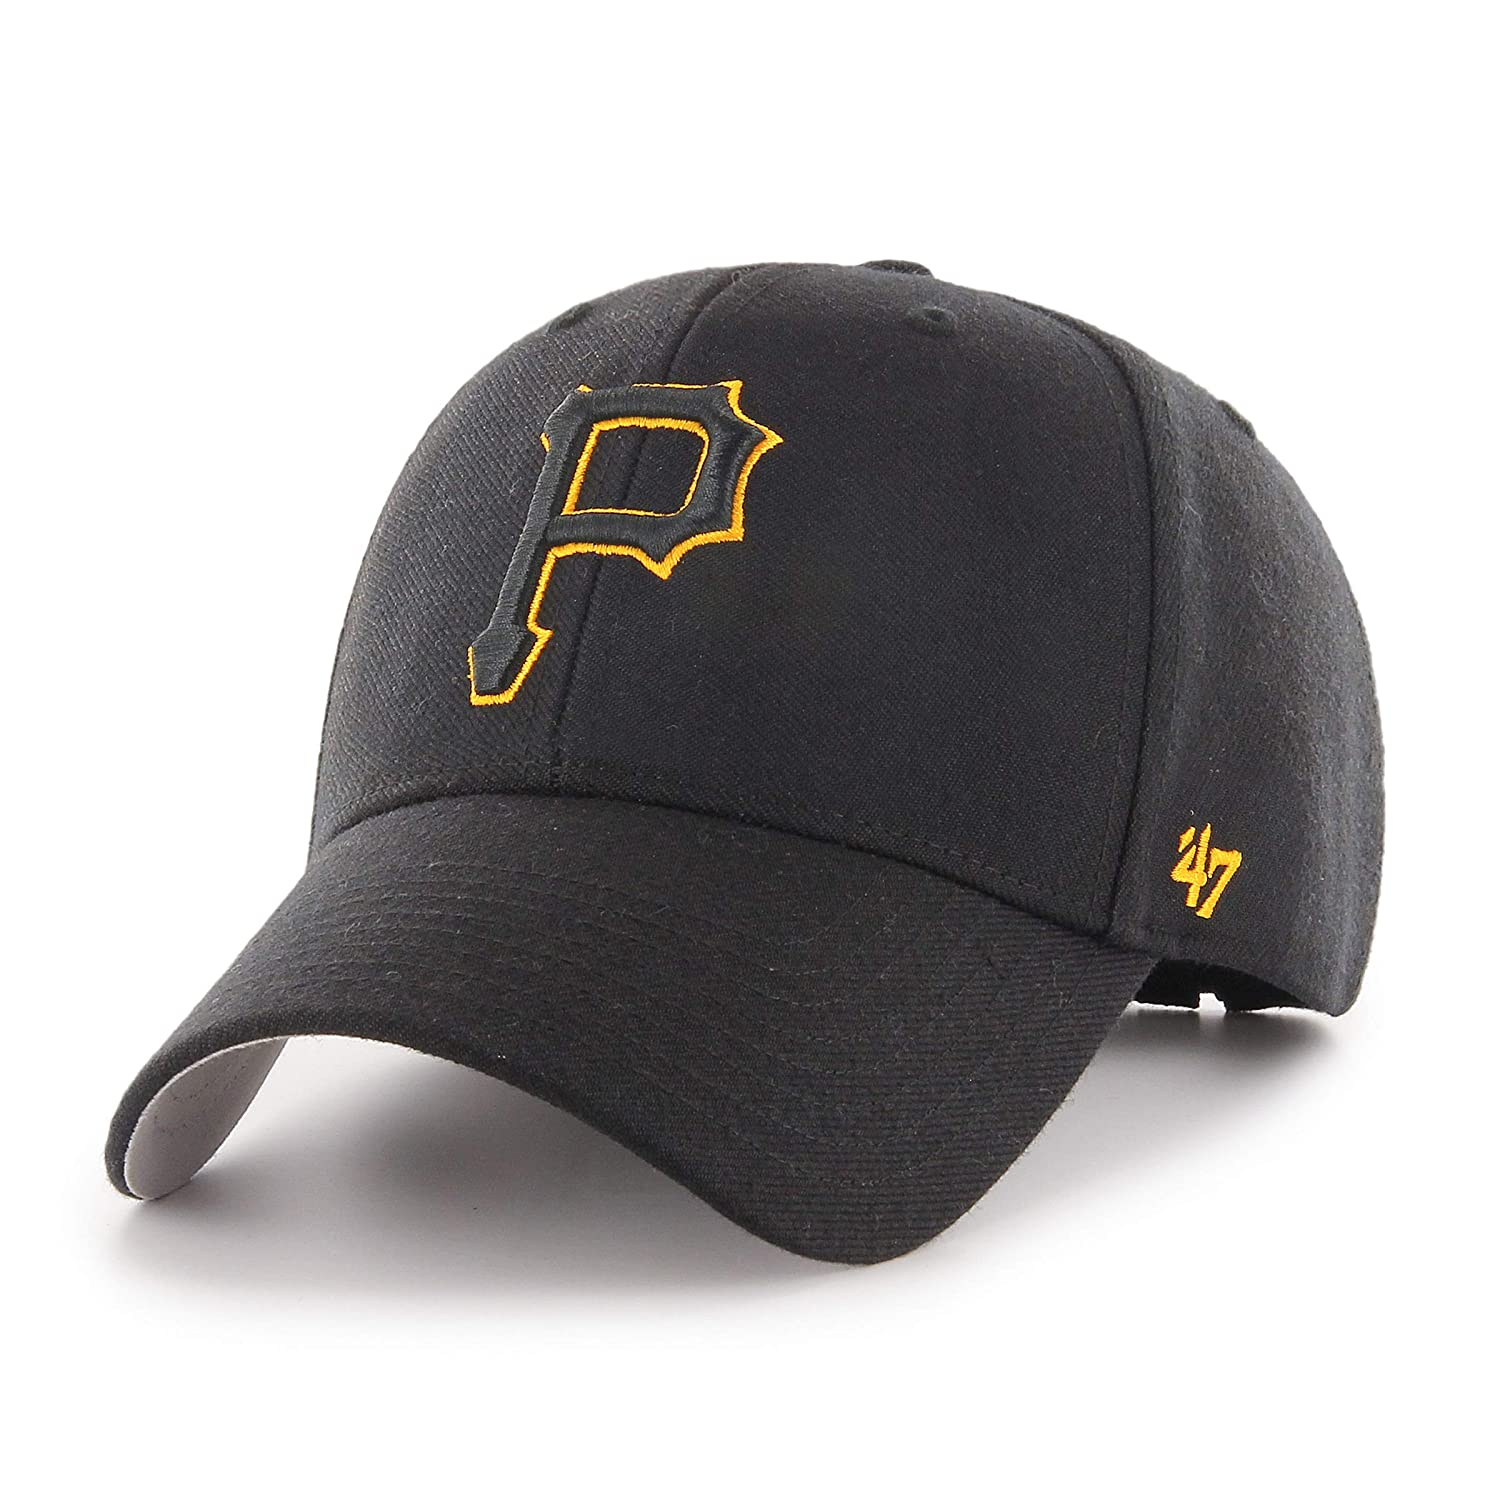 6740efc21d2f4 Amazon.com   47 Brand Pittsburgh Pirates MVP Cap - Black  Clothing